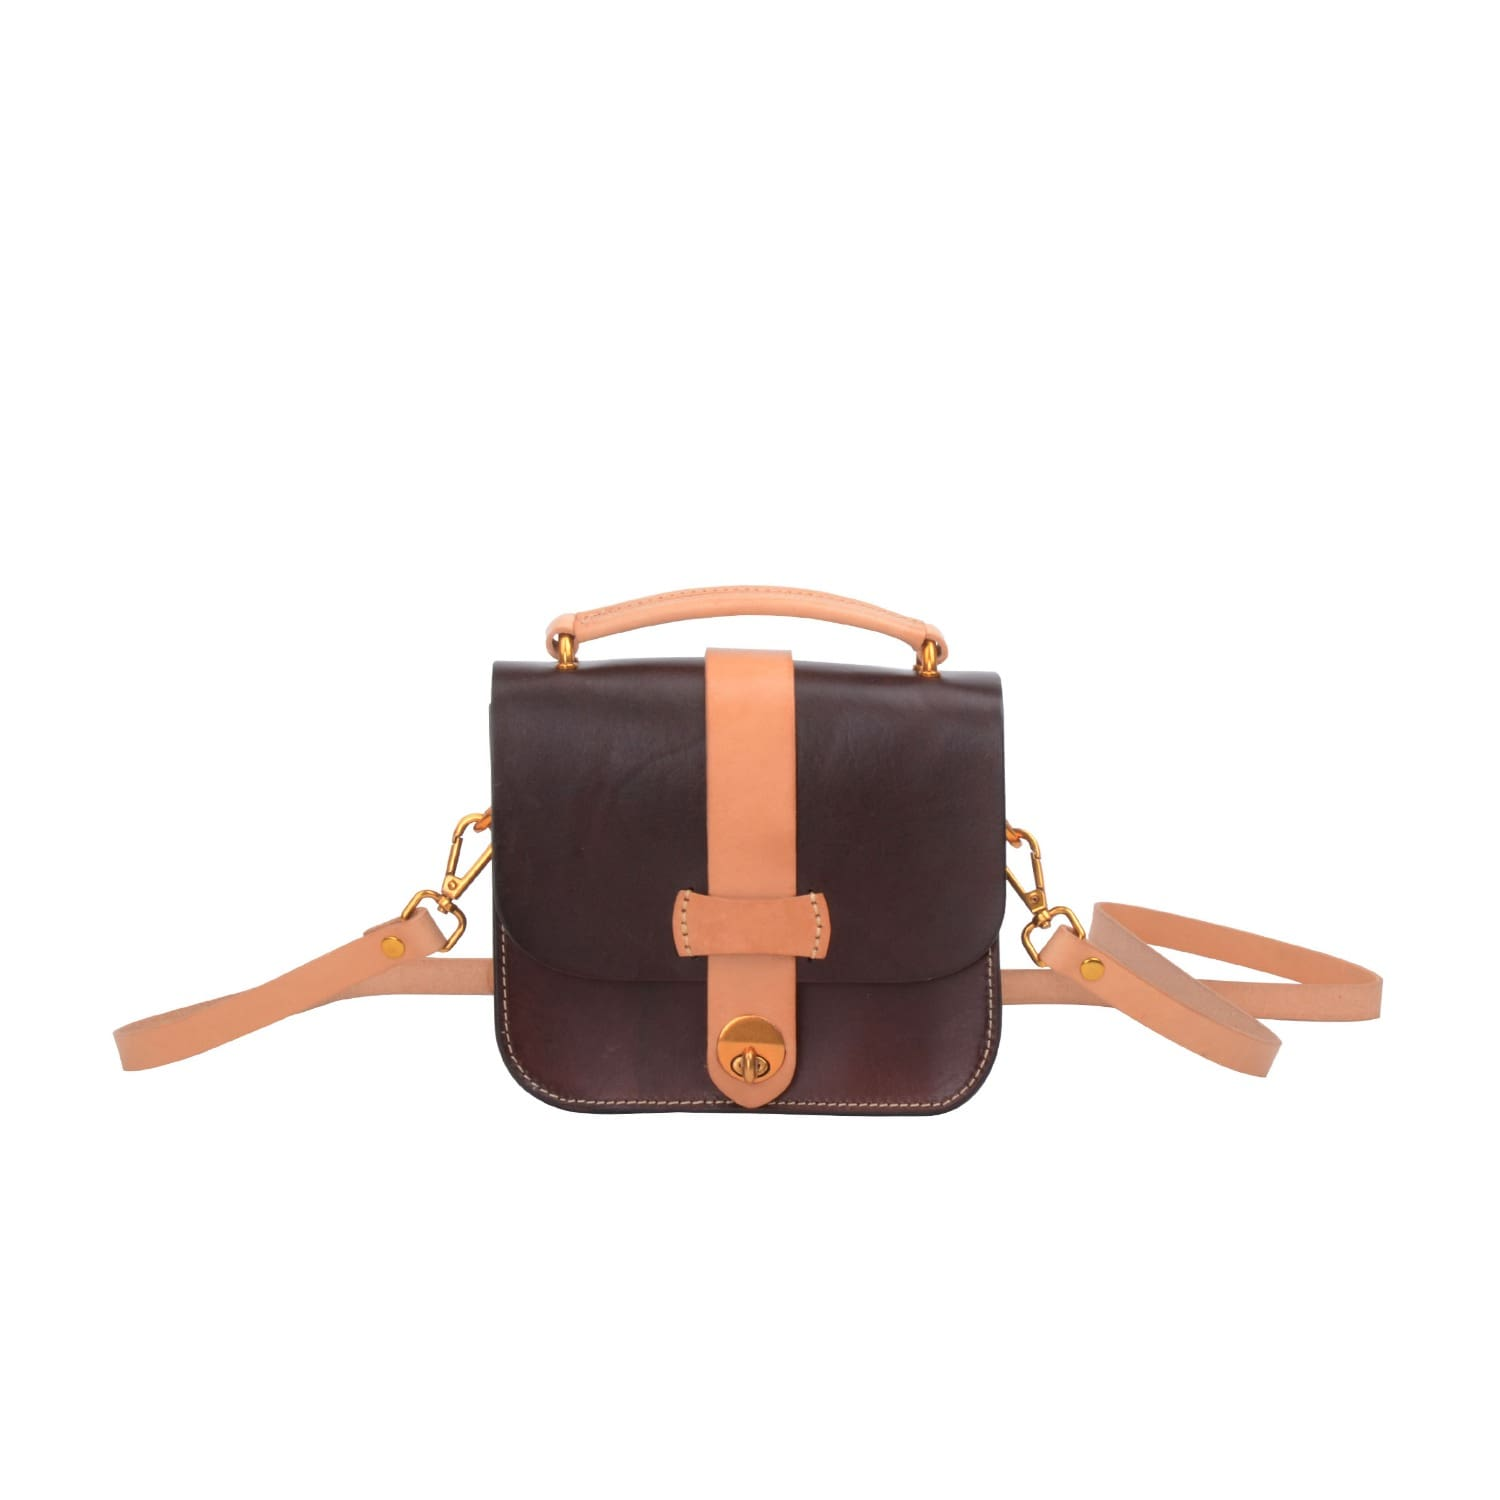 EAZO Leather Cross-Body Mini Bag In Dark Cheapest Cheap Online Professional Cheap Online Clearance Shop Offer Brand New Unisex Cheap Online Cost N3P4O3nR